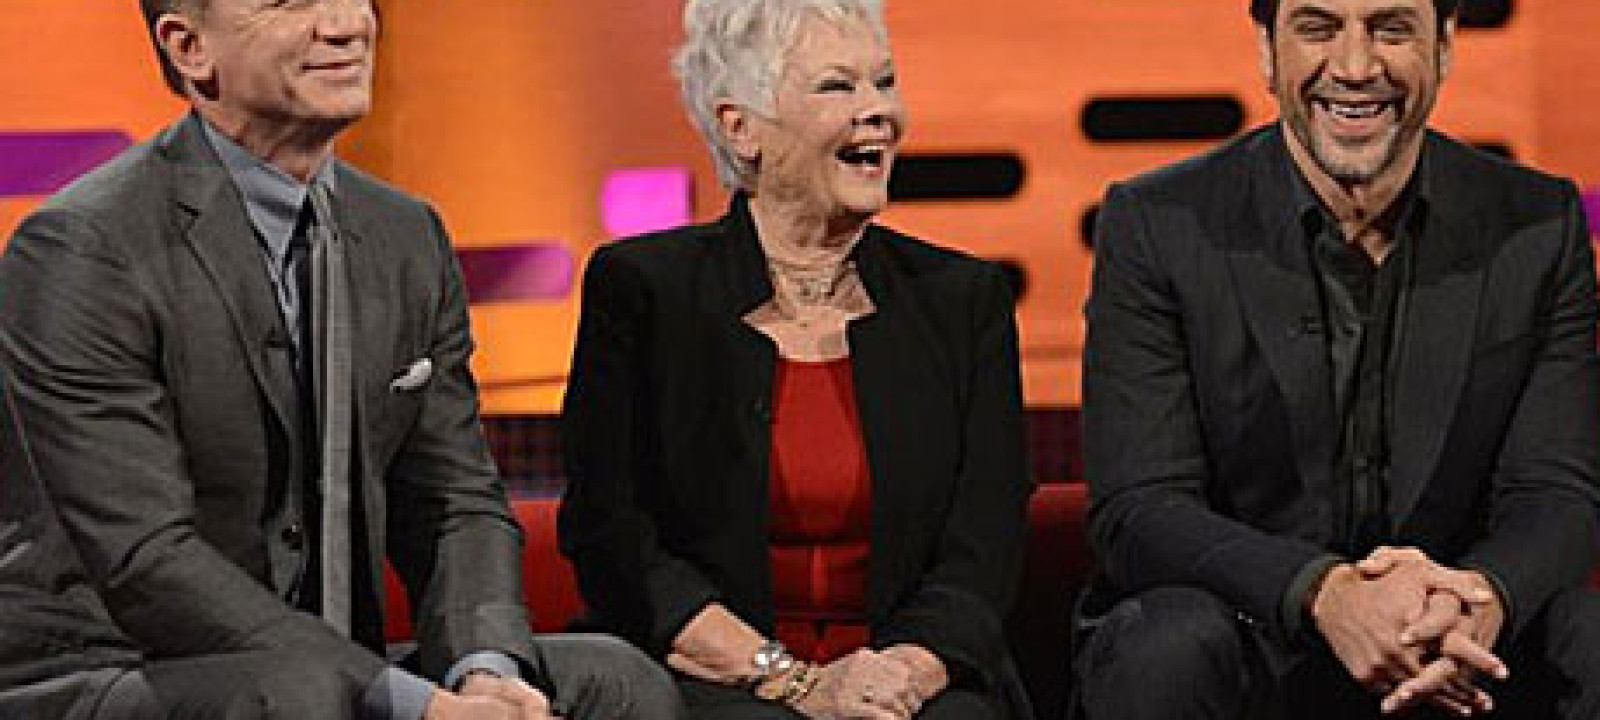 Daniel Craig, Judi Dench and Javier Bardem on The Graham Norton Show